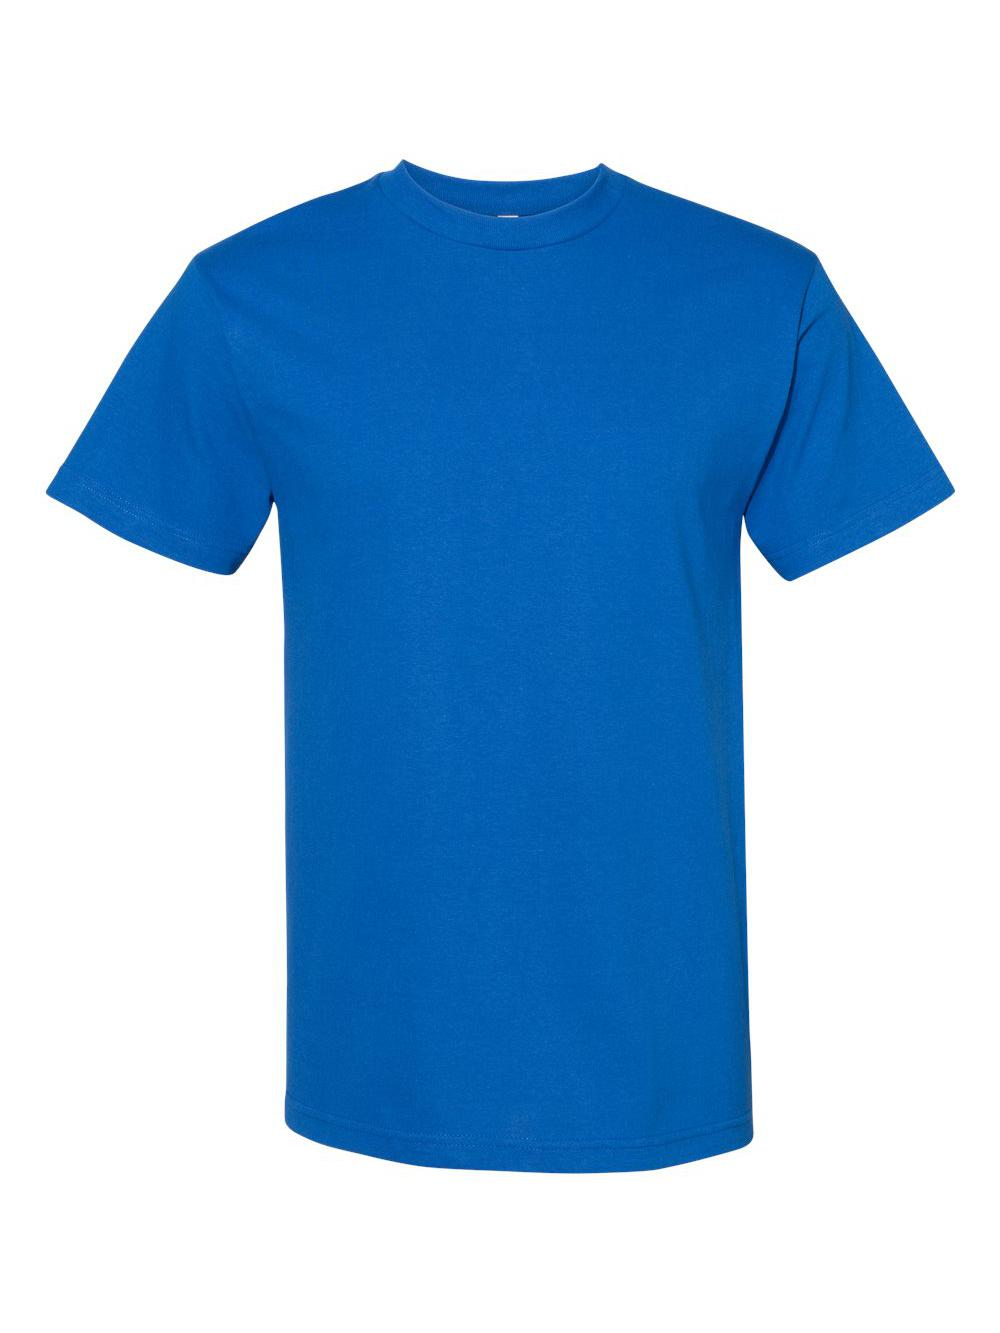 ALSTYLE-Classic-T-Shirt-1301 thumbnail 68